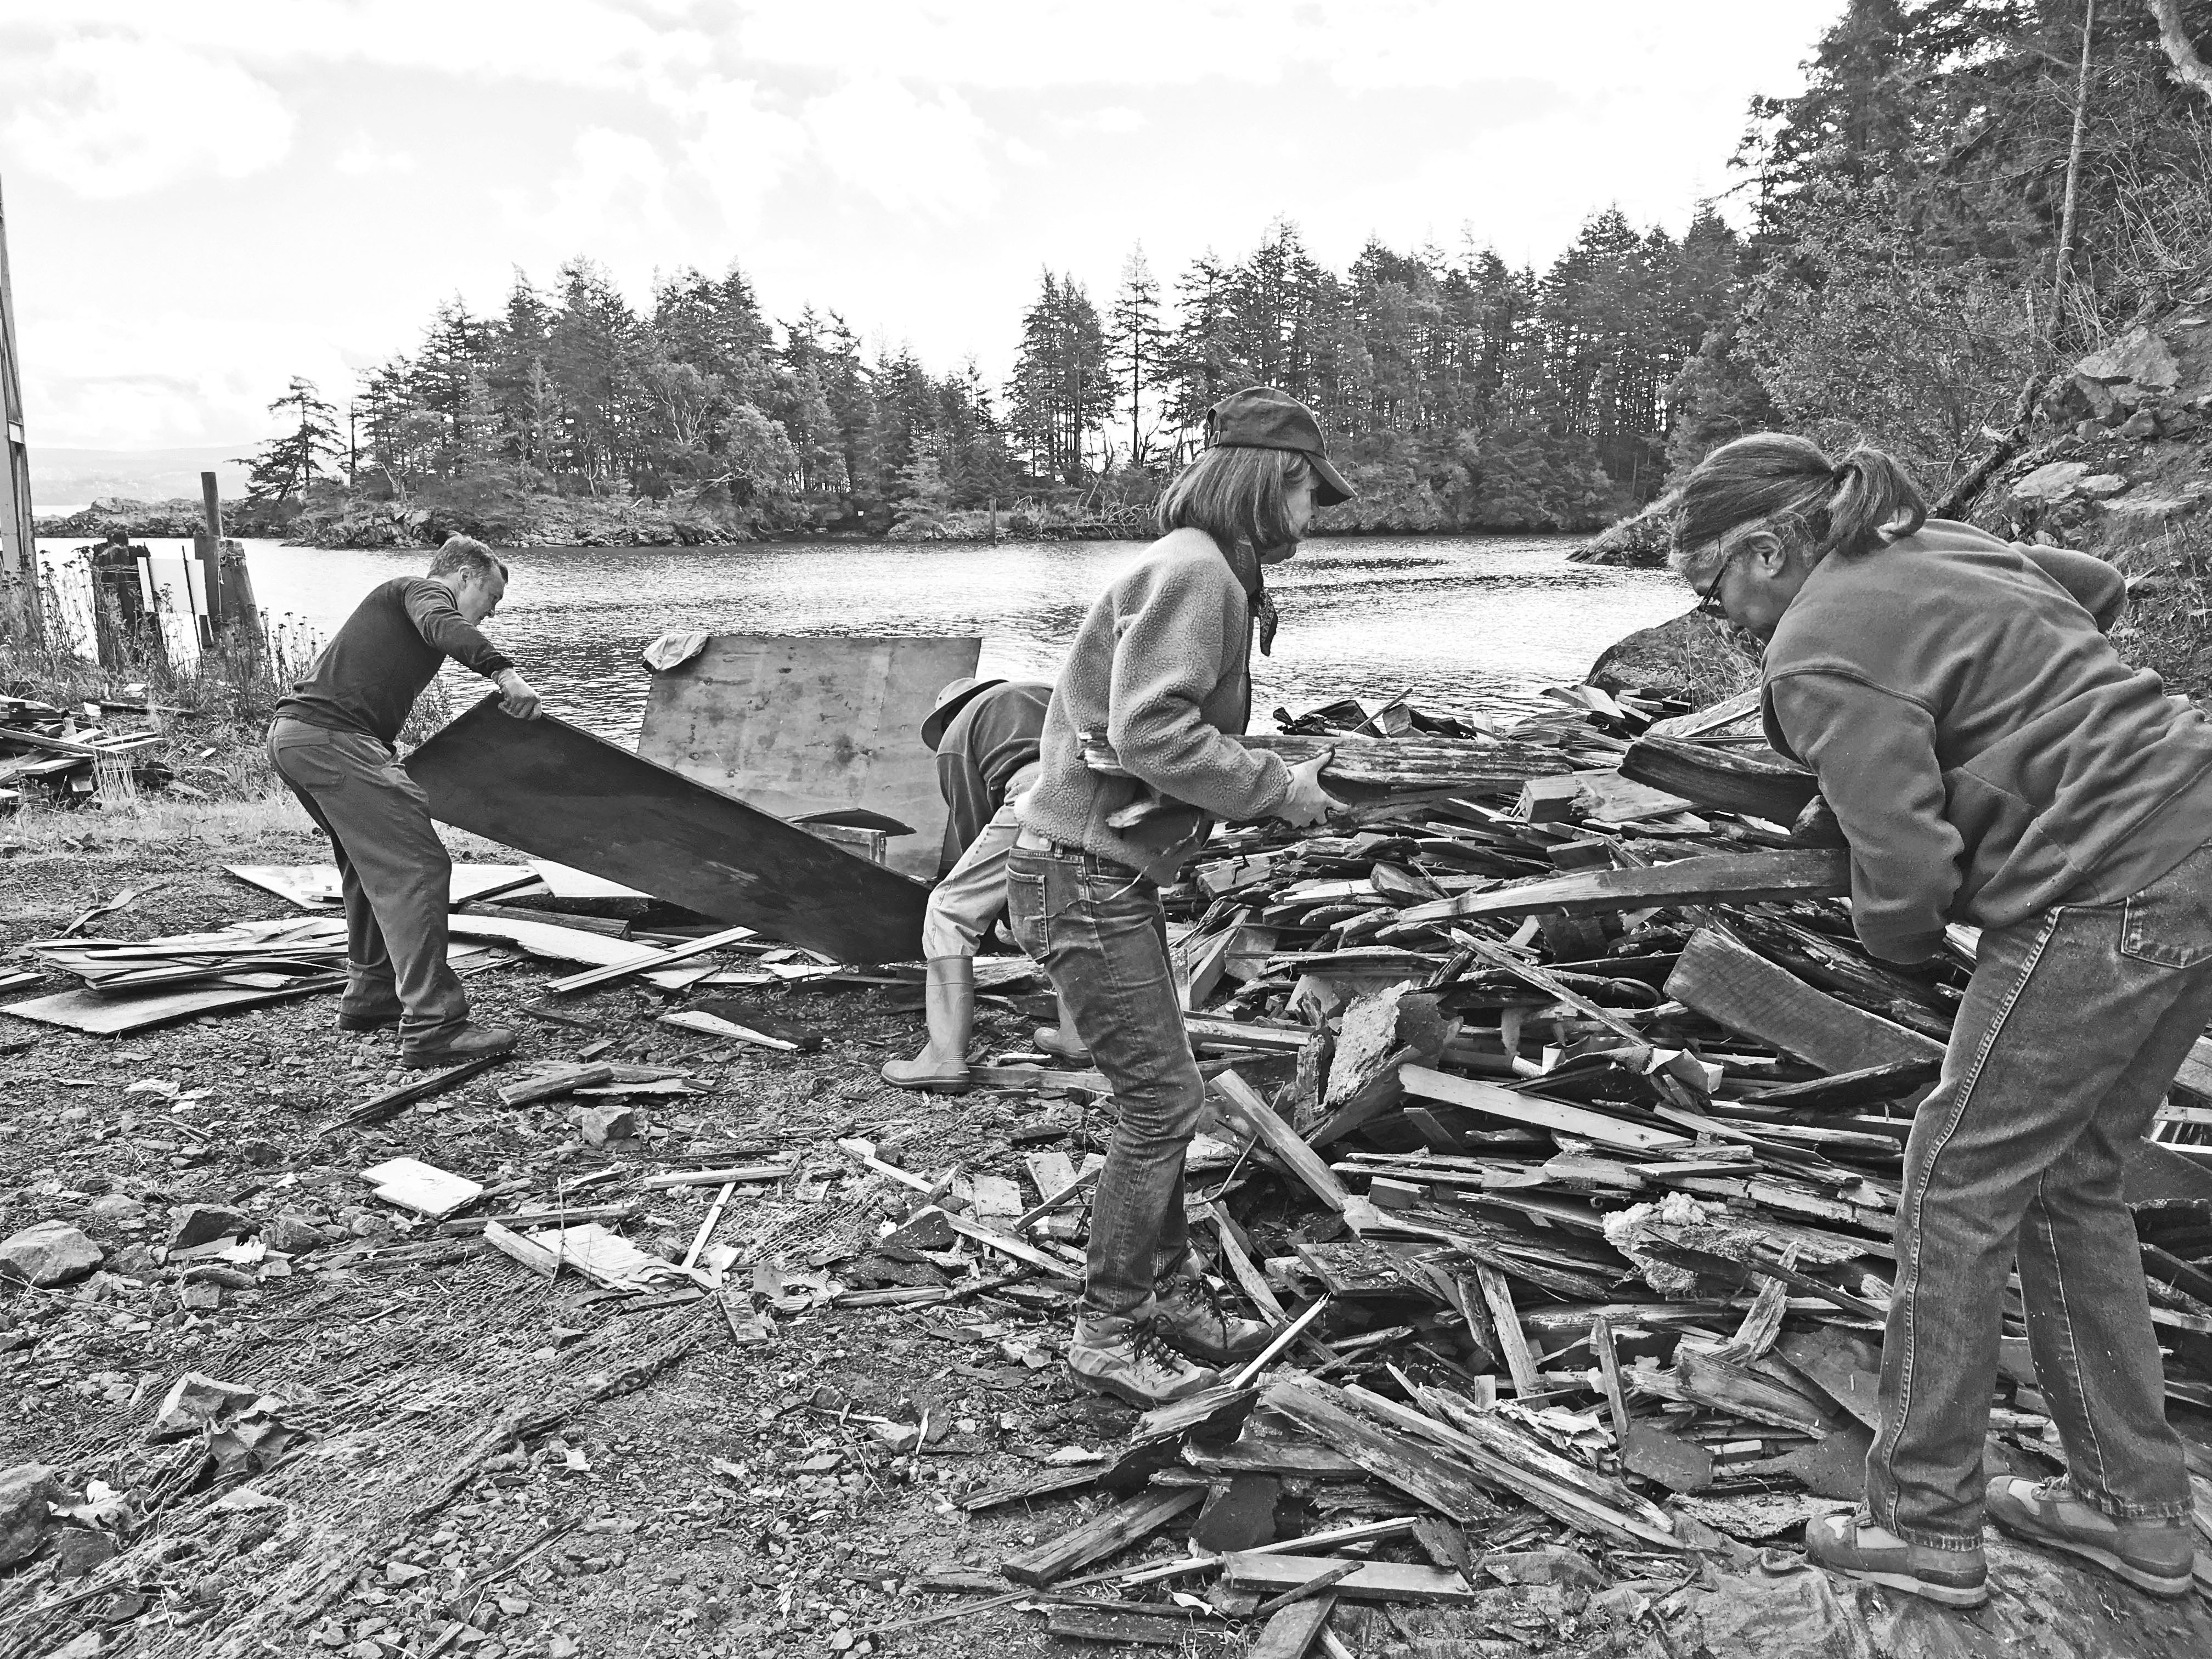 Lummi Island Heritage Trust volunteers sort debris on the shoreline of the Aiston Preserve, once an active rock quarry on the eastern shoreline of Lummi Island. Restoration is underway and in the future the 105 acre Aiston Preserve will become a nature preserve with access from the water for small boats. Visitors will be able to enjoy low impact recreation such as hiking and bird watching. photo: Lummi Island Heritage Trust